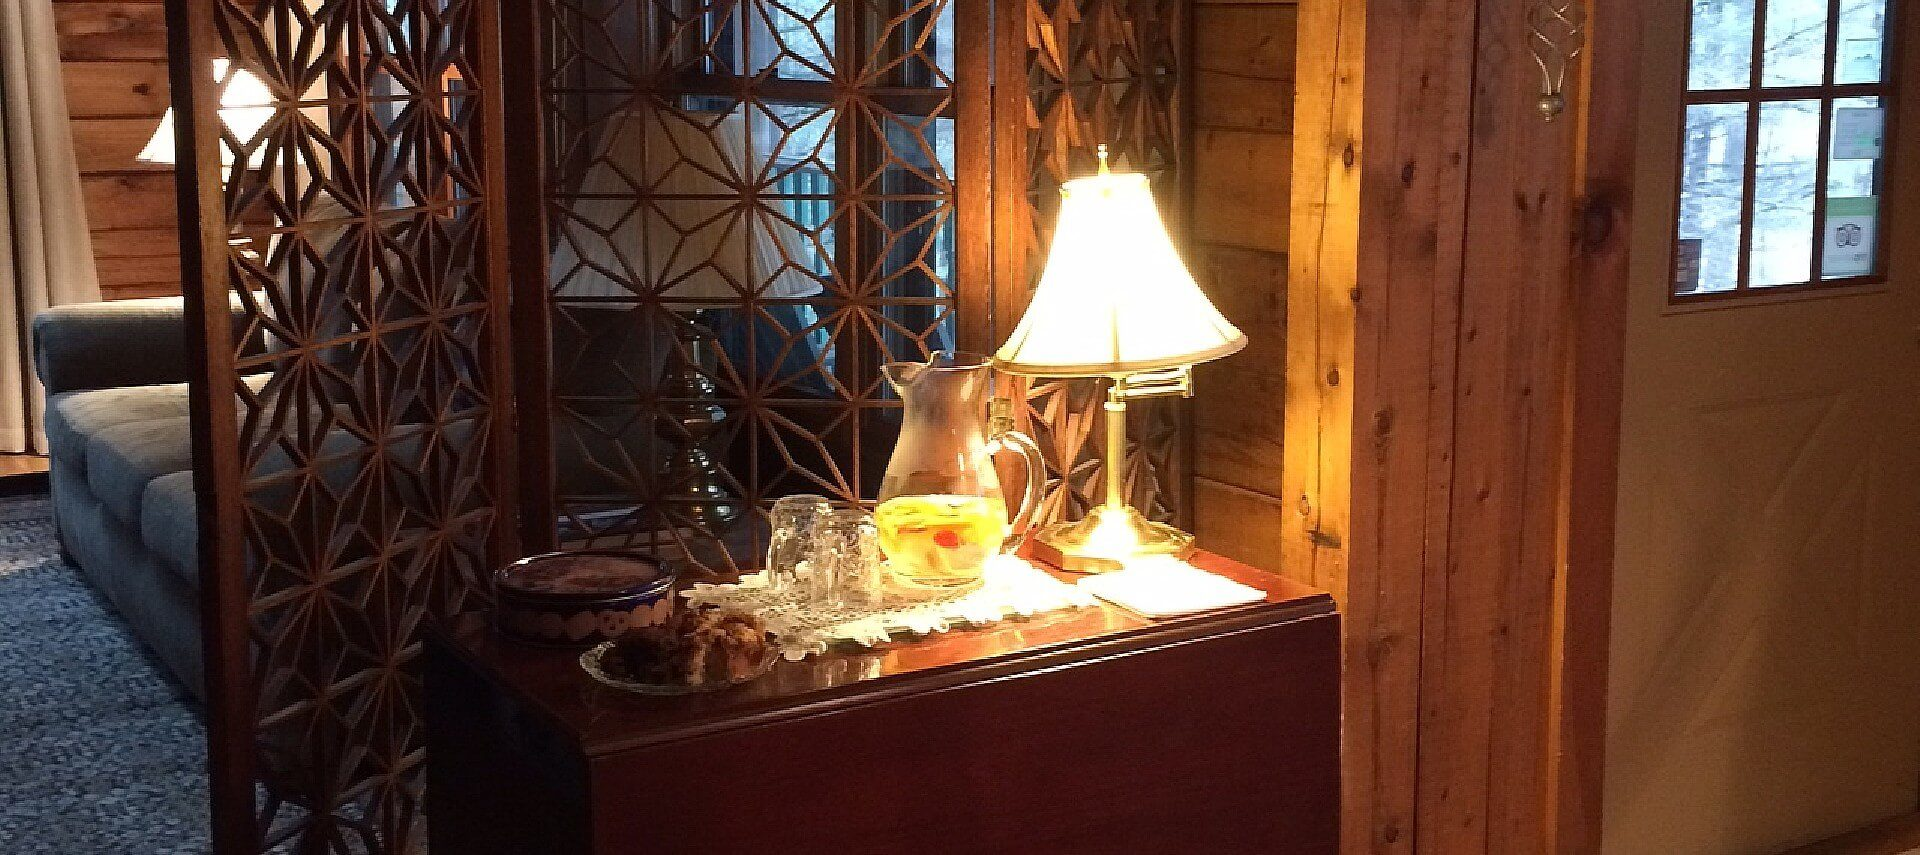 Wood table by a front door holding plate of cookies, pitcher of lemonade, glasses and lamp in front of a tall decorative screen